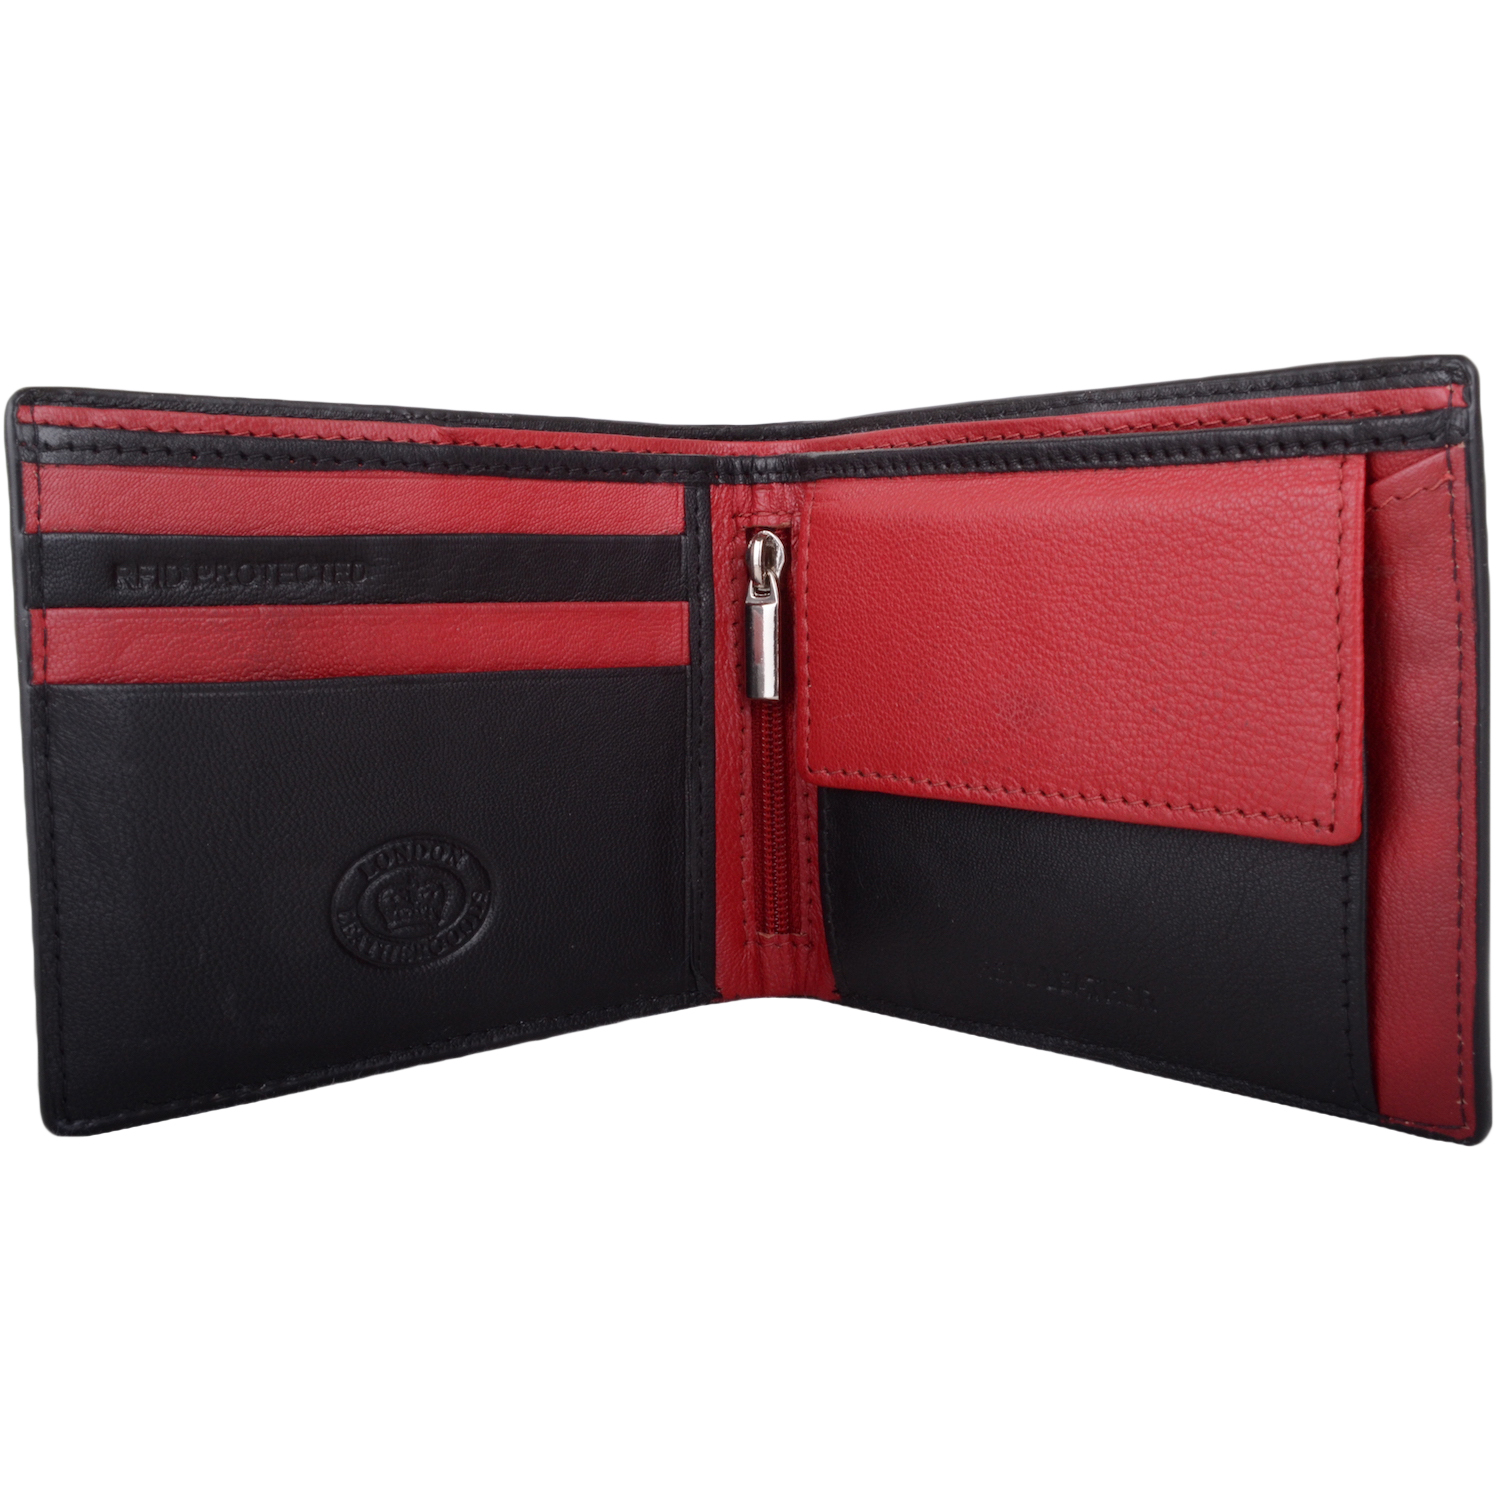 RFID Protected Leather Multi-Colour Wallet - Black/Red